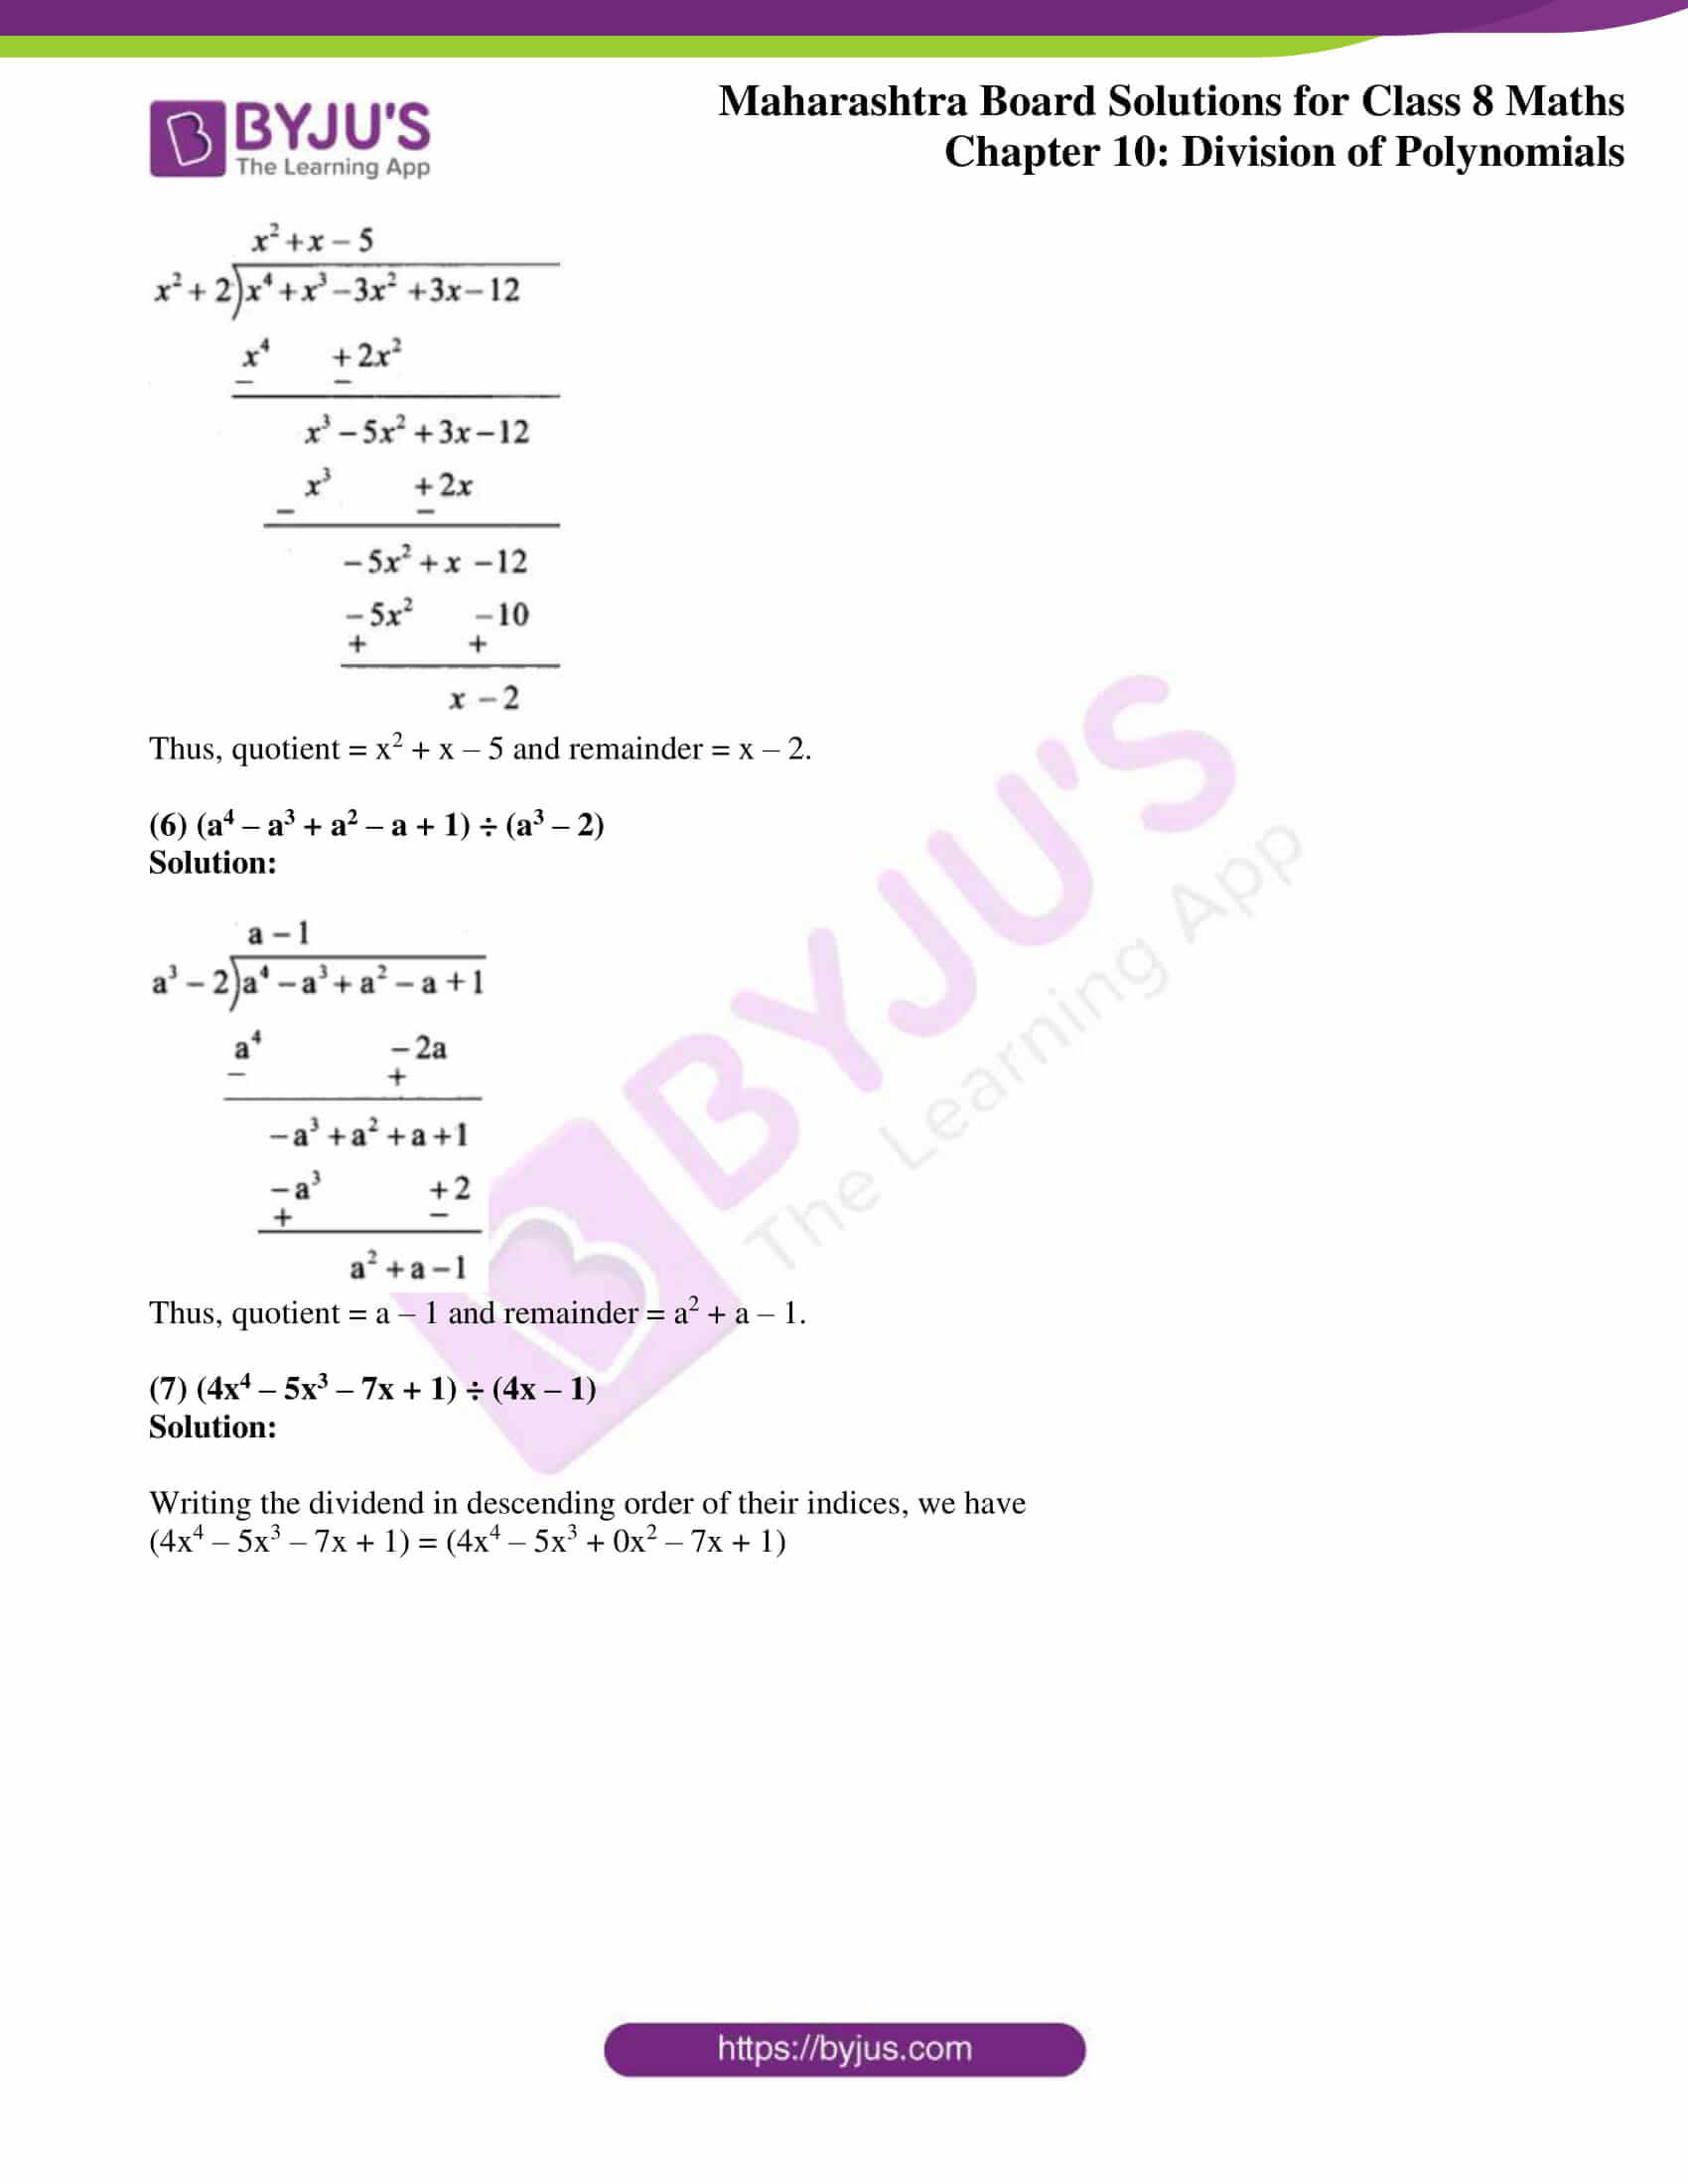 msbshse sol for class 8 maths chapter 10 6